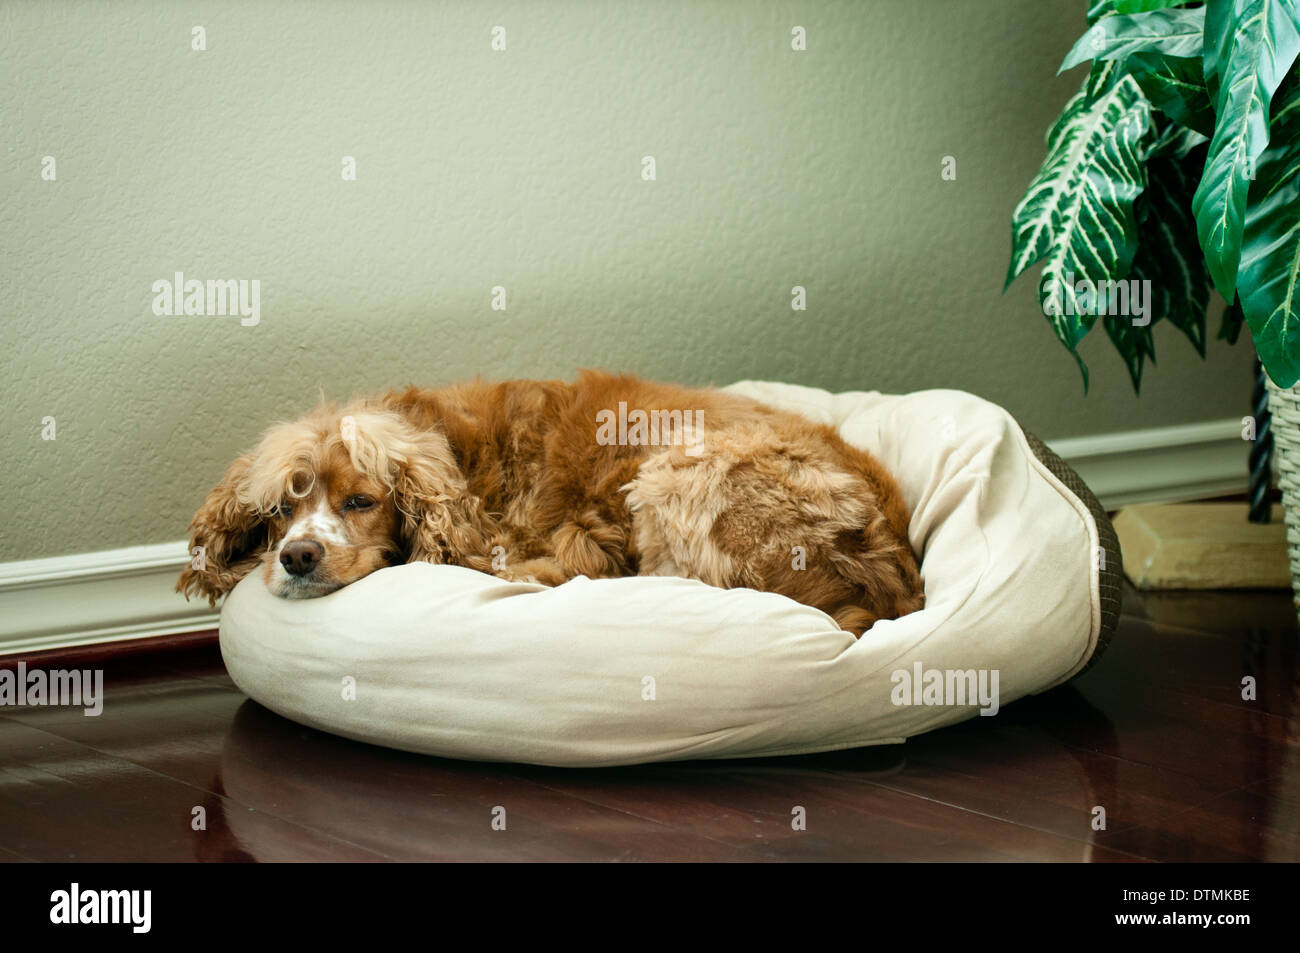 Cocker Spaniel family pet dog lounges on a cushion on polished wooden floor with plant in background - Stock Image